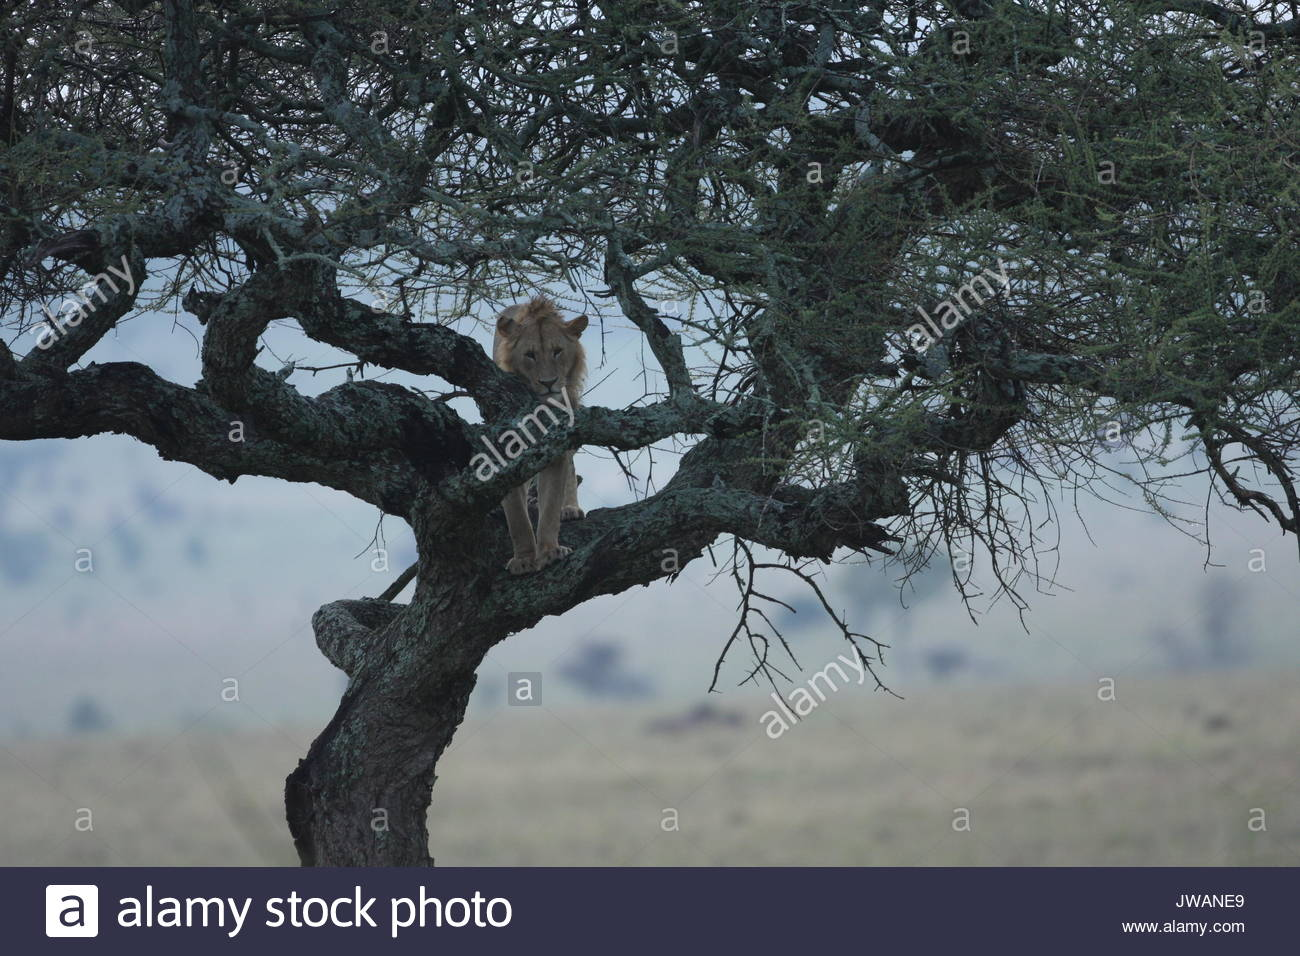 Lion,Panthera leo. It is rare to see a lion in a tree. Lions are the biggest cats and just like a house cat,this young male lion got stuck in a tree. - Stock Image